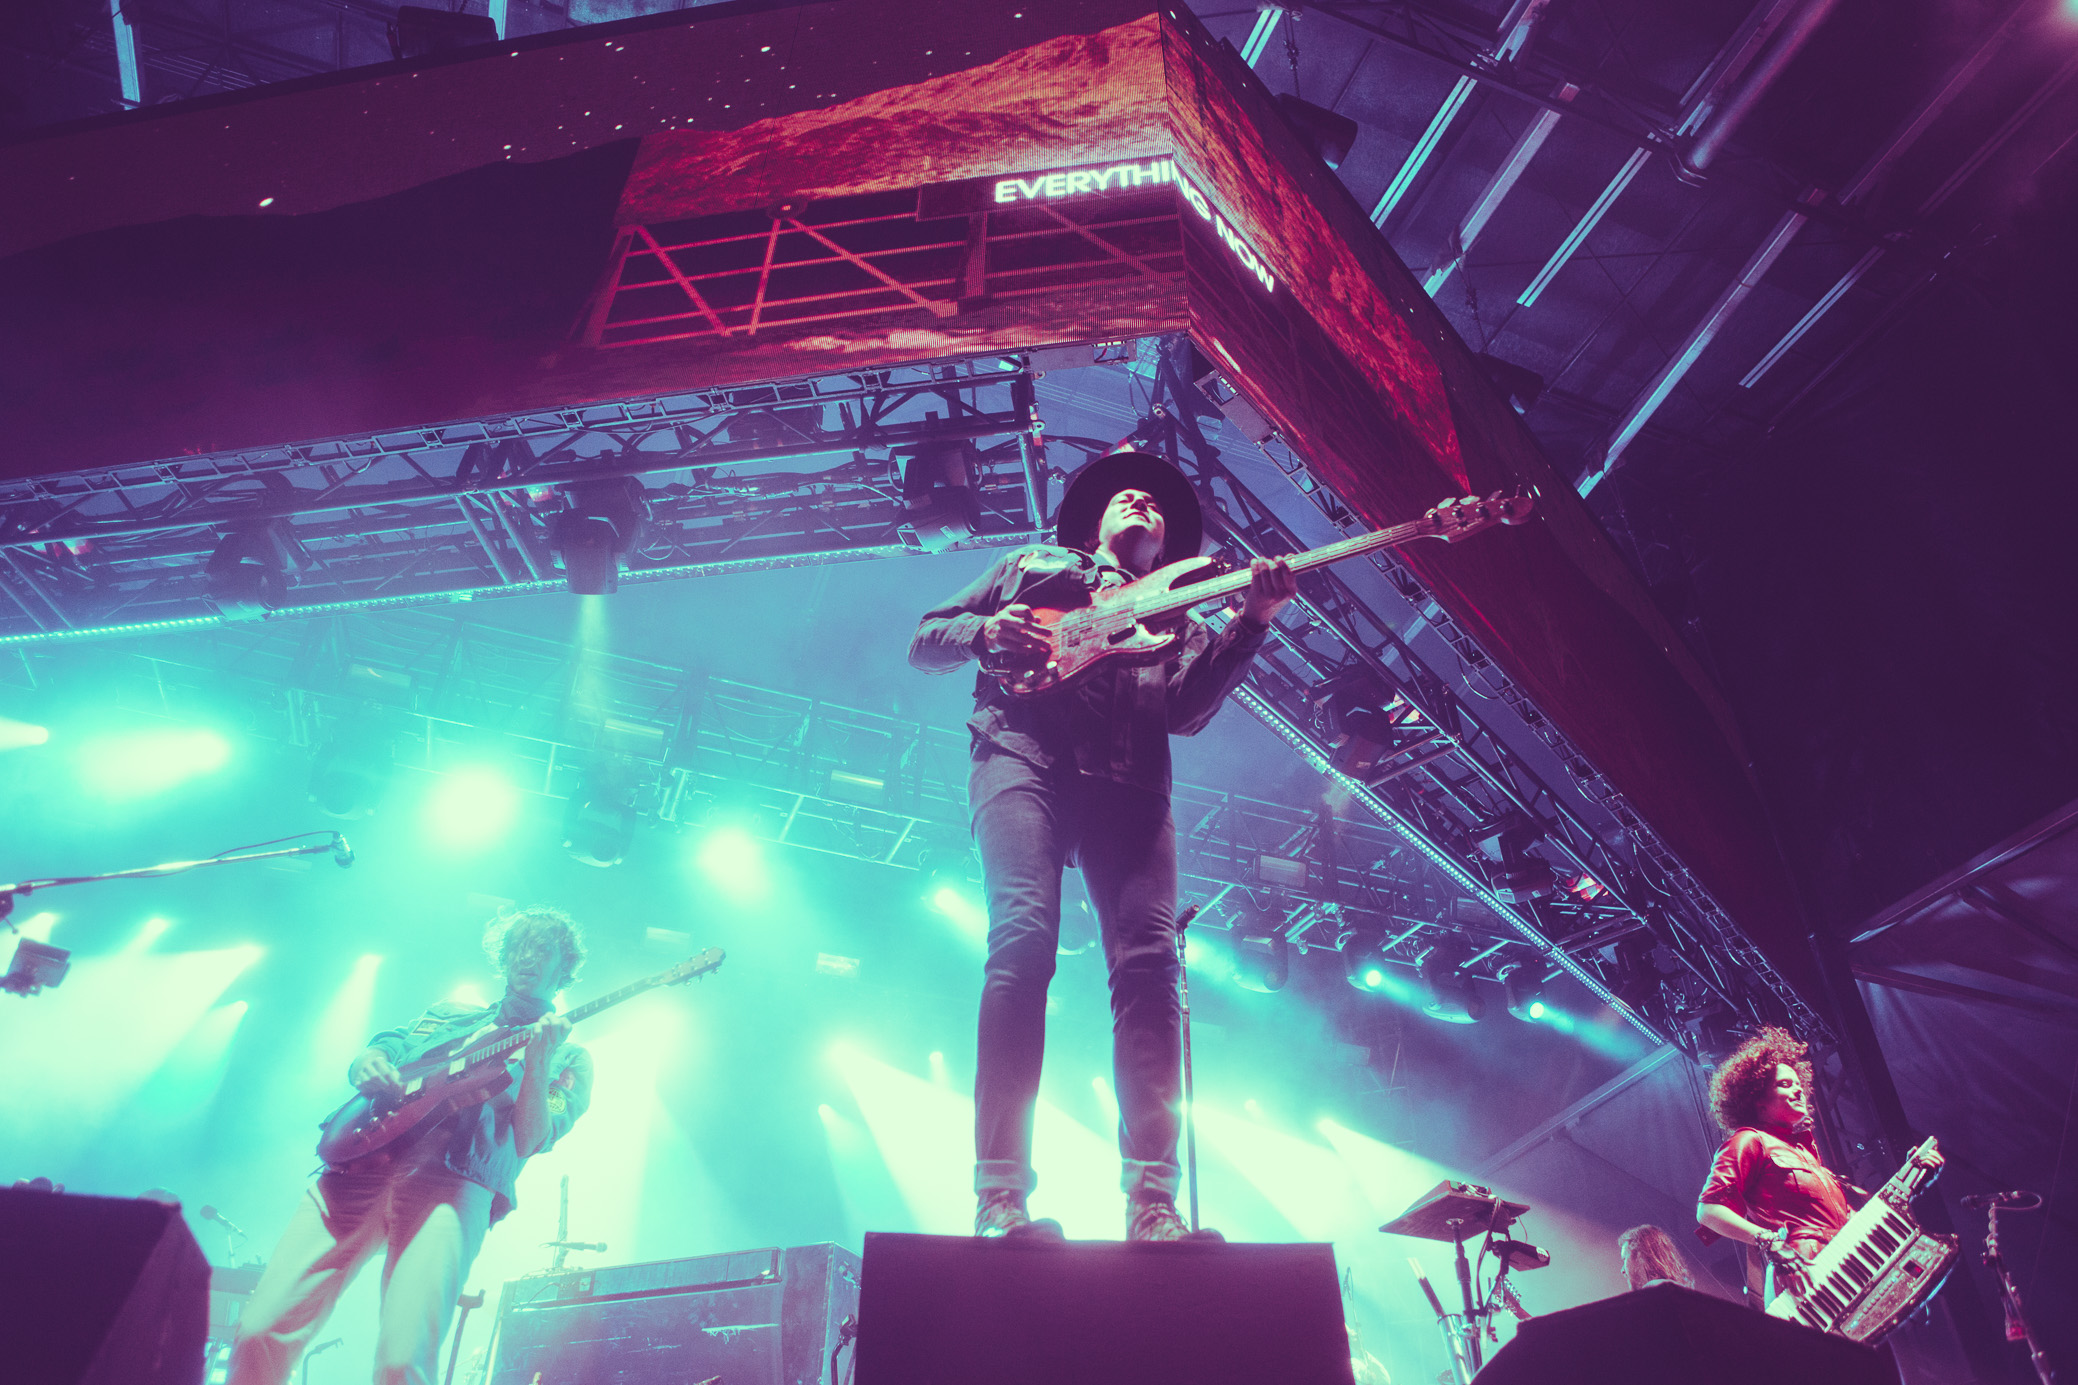 Arcade Fire performs in concert at the Sloss Music and Arts Festival in Birmingham, Alabama on July 14th, 2018. (Photo by David A. Smith/DSmithScenes)Arcade Fire performs in concert at the Sloss Music and Arts Festival in Birmingham, Alabama on July 14th, 2018. (Photo by David A. Smith/DSmithScenes)